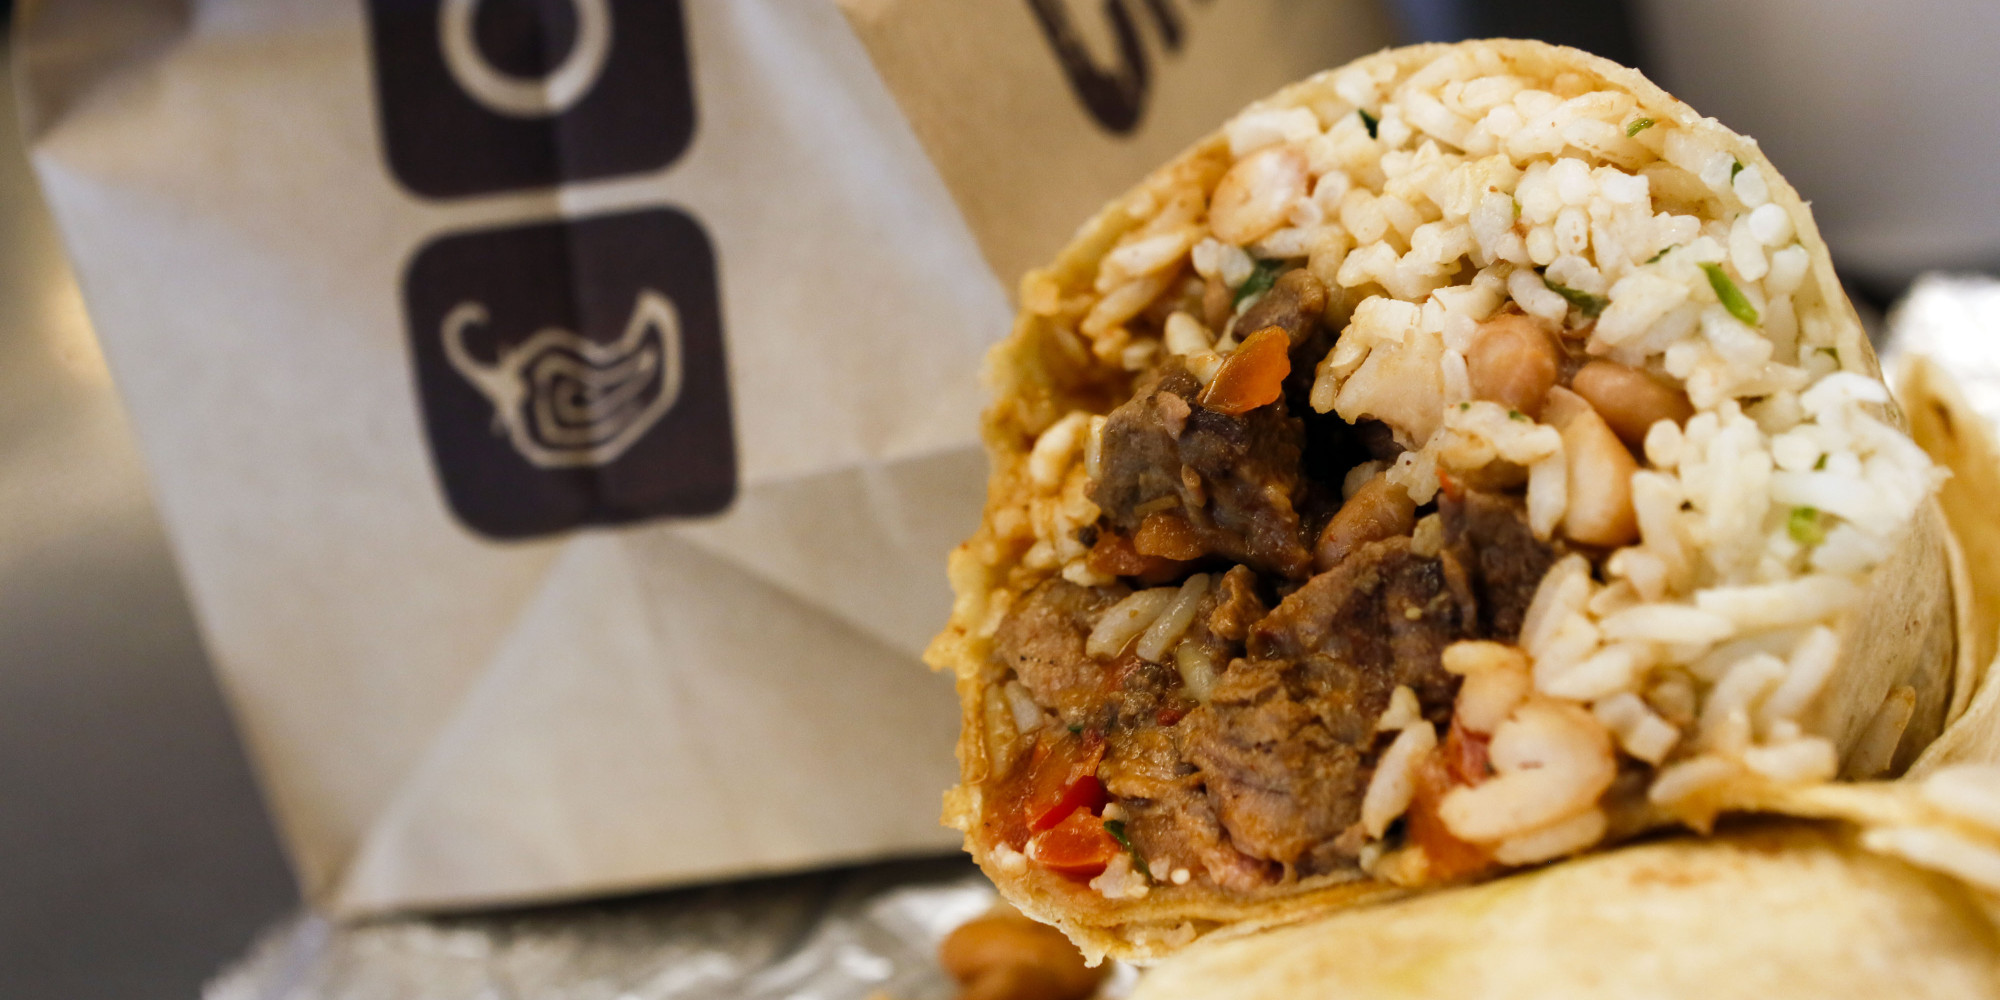 Chipotle e coli stock prices